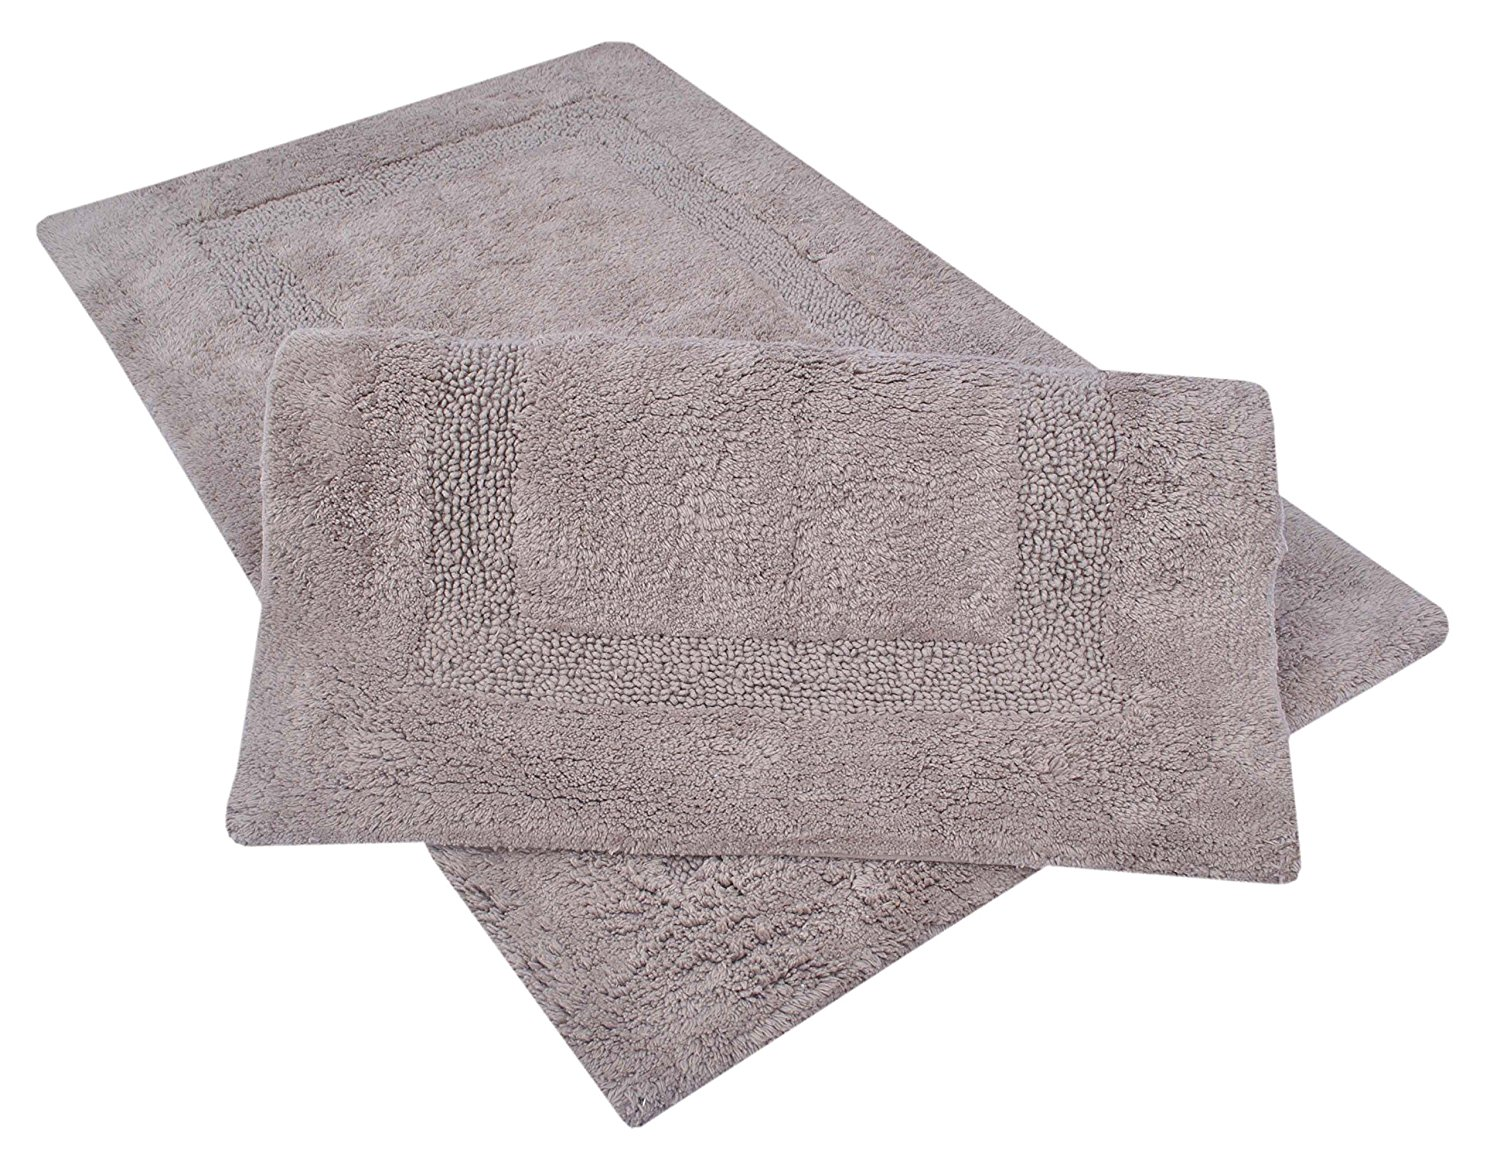 Get Quotations Set Of 2 Large 21 X 34 Inches 100 Cotton Tuffted Bath Rugs With Anti